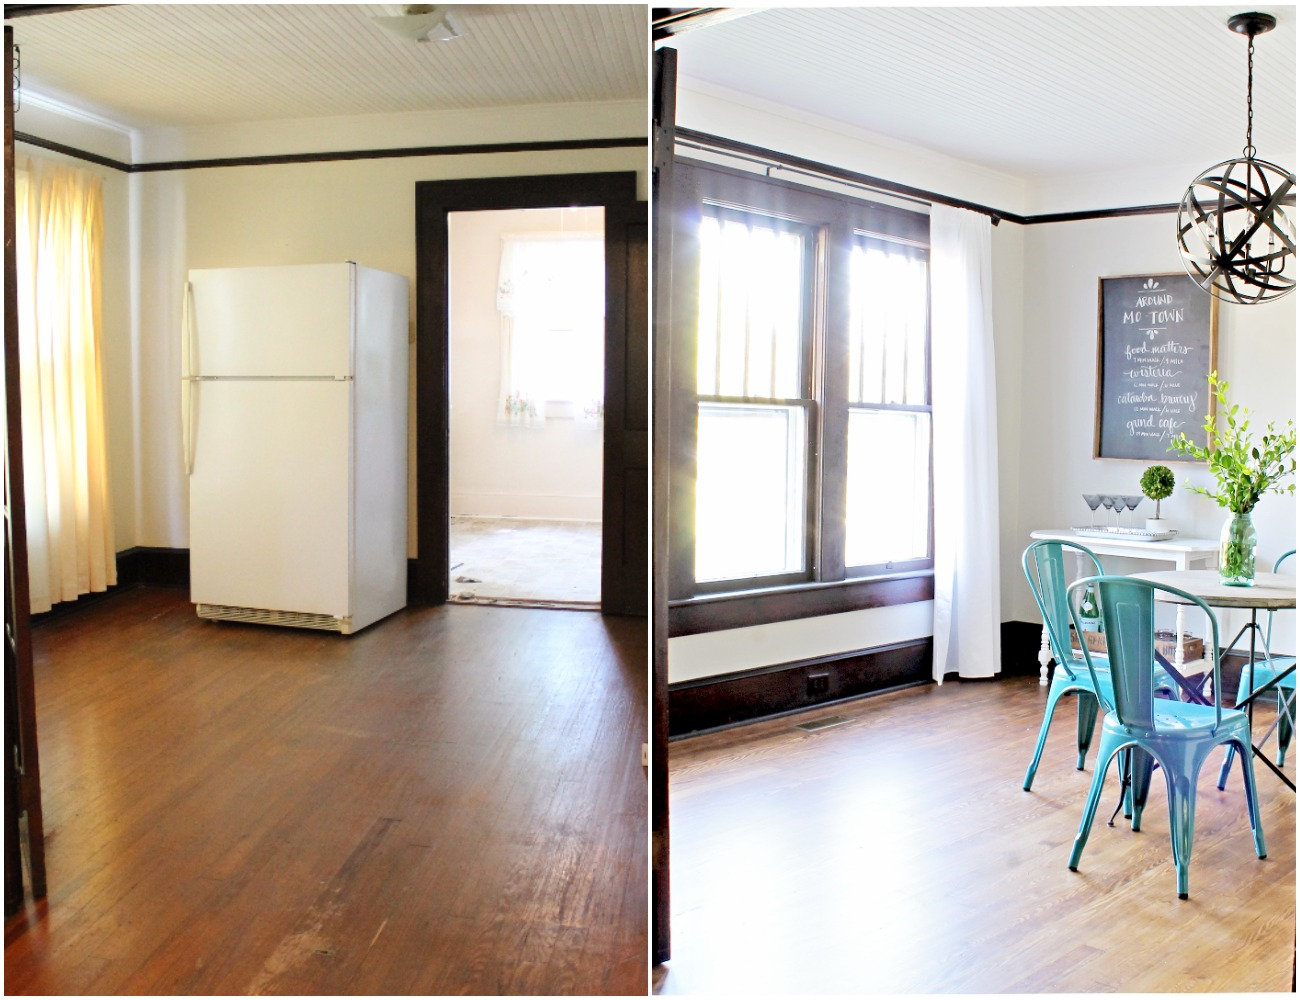 House Flipping Before and Afters - Dining Room Budget Renovation Remodel, Wood Trim Paint Colors - Sherwin Williams Repose Gray (2).jpg